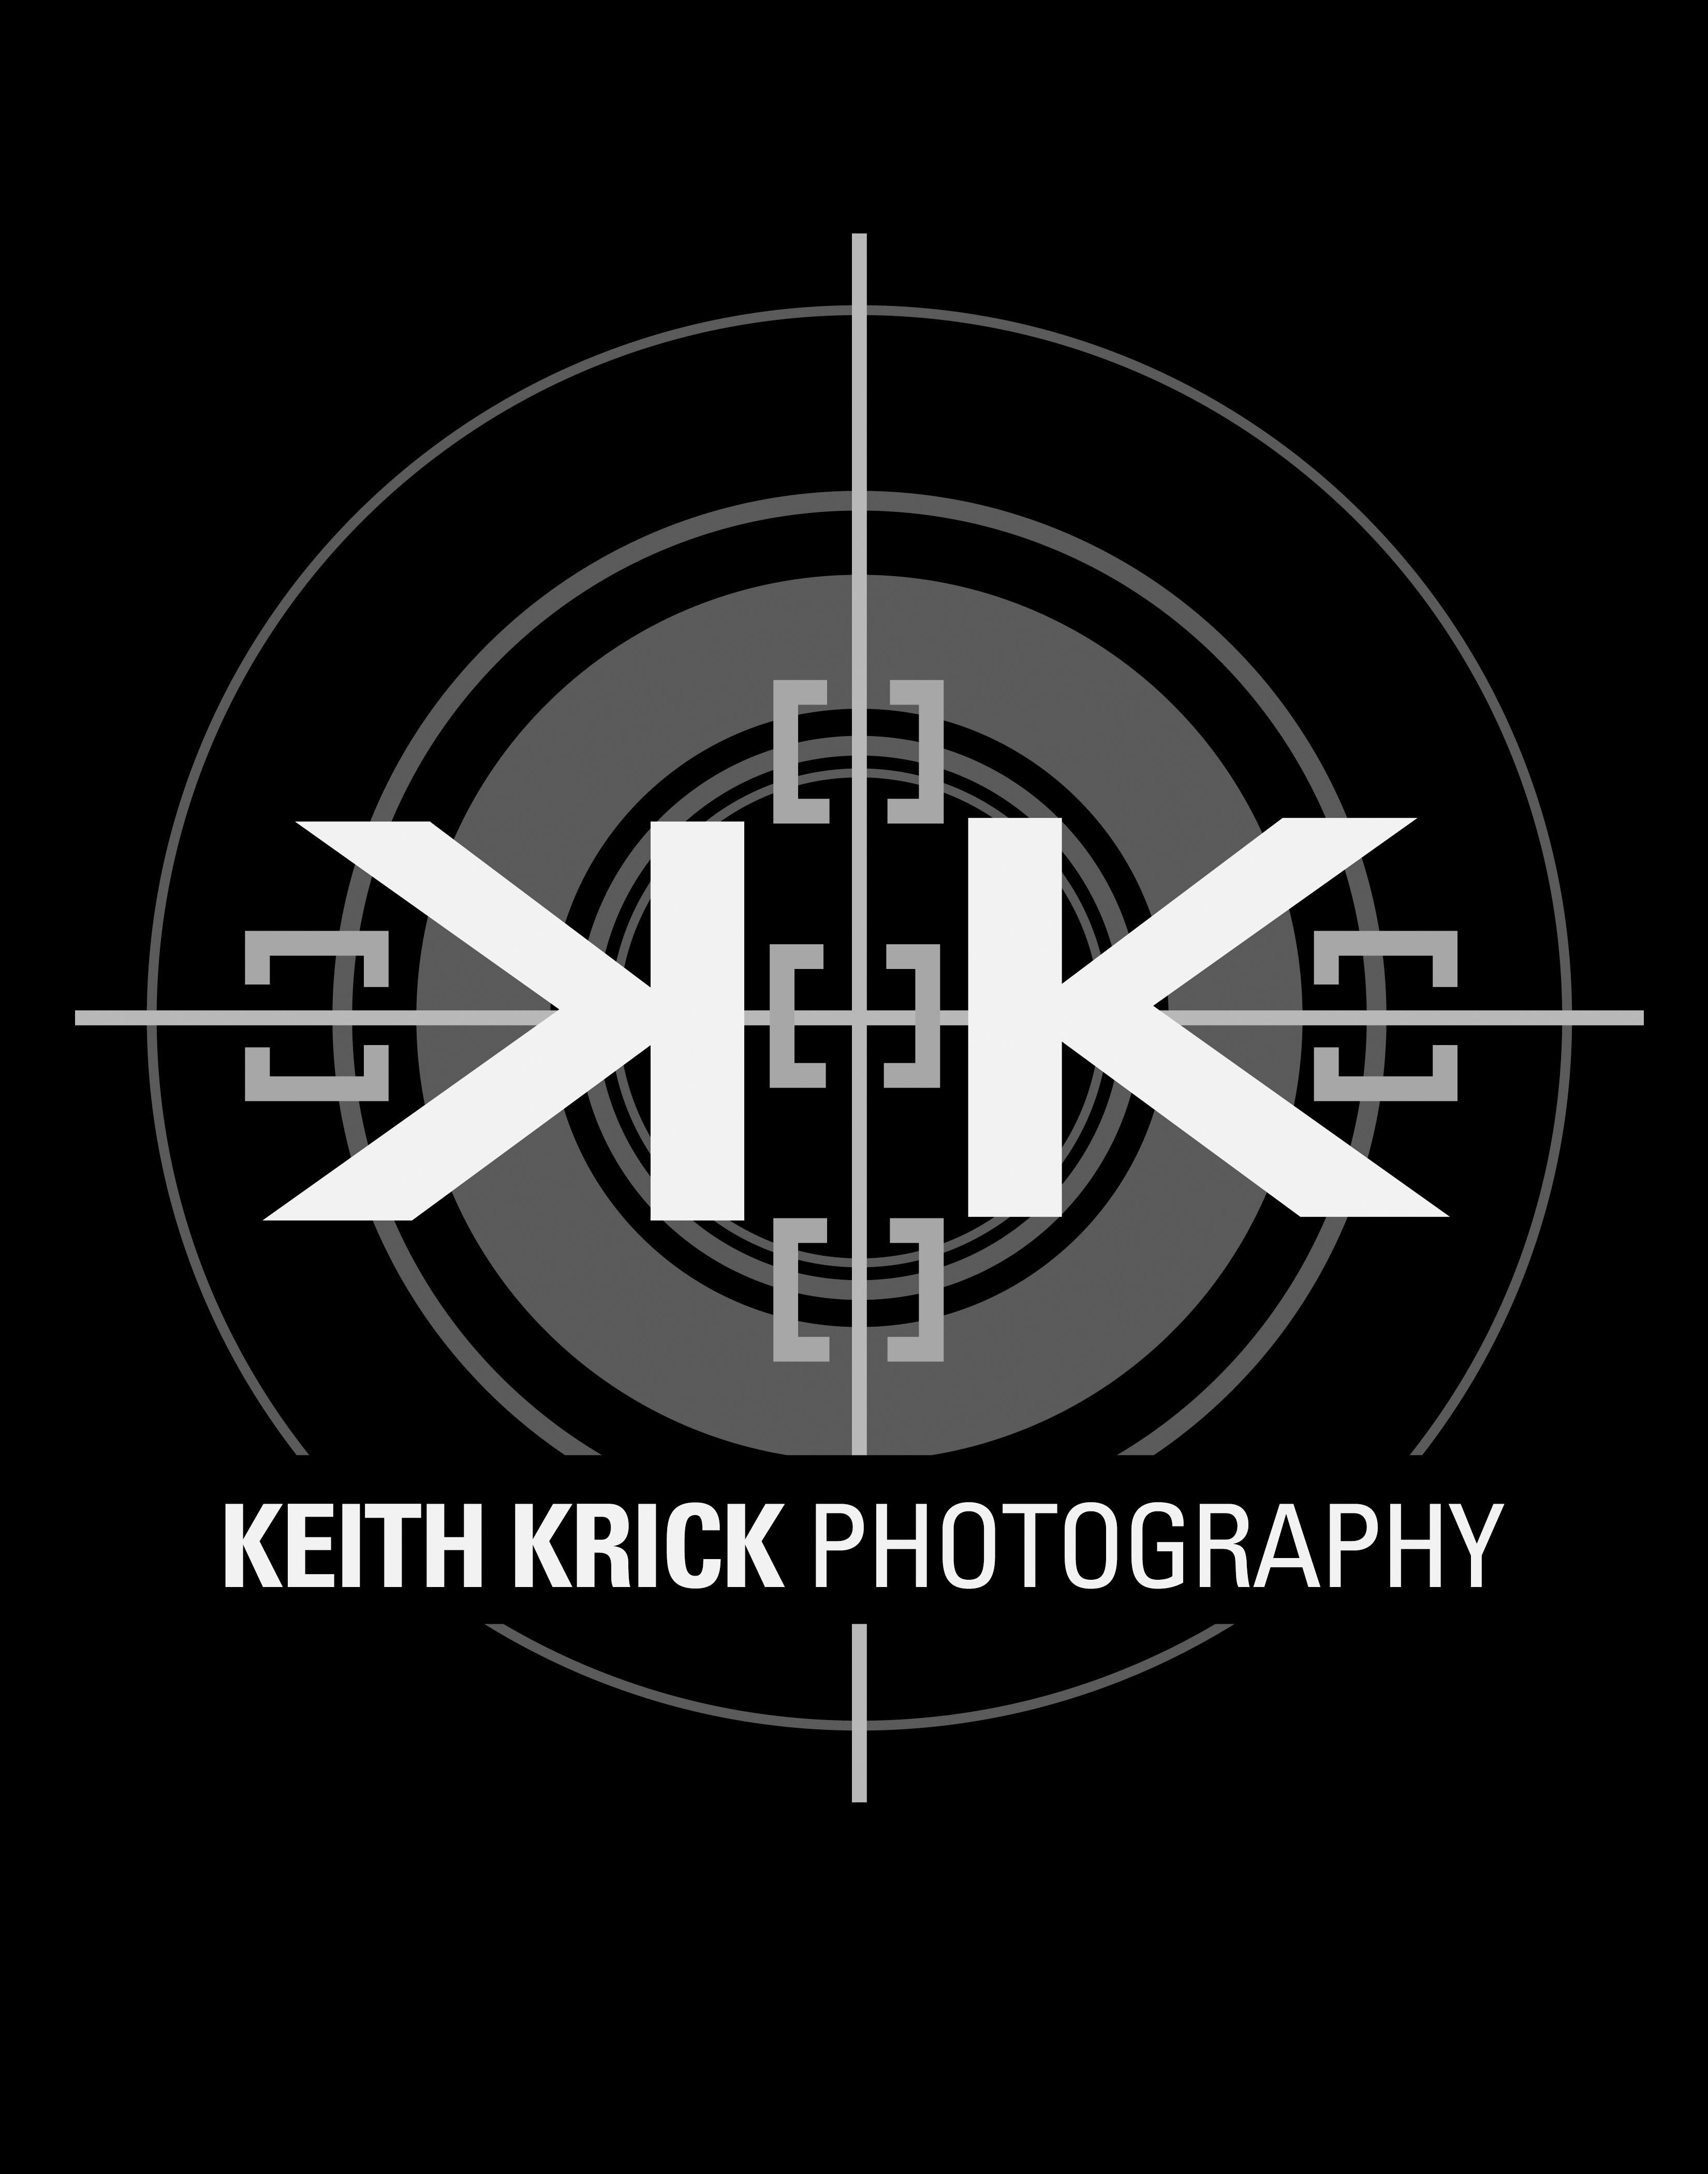 Keith Krick Photography